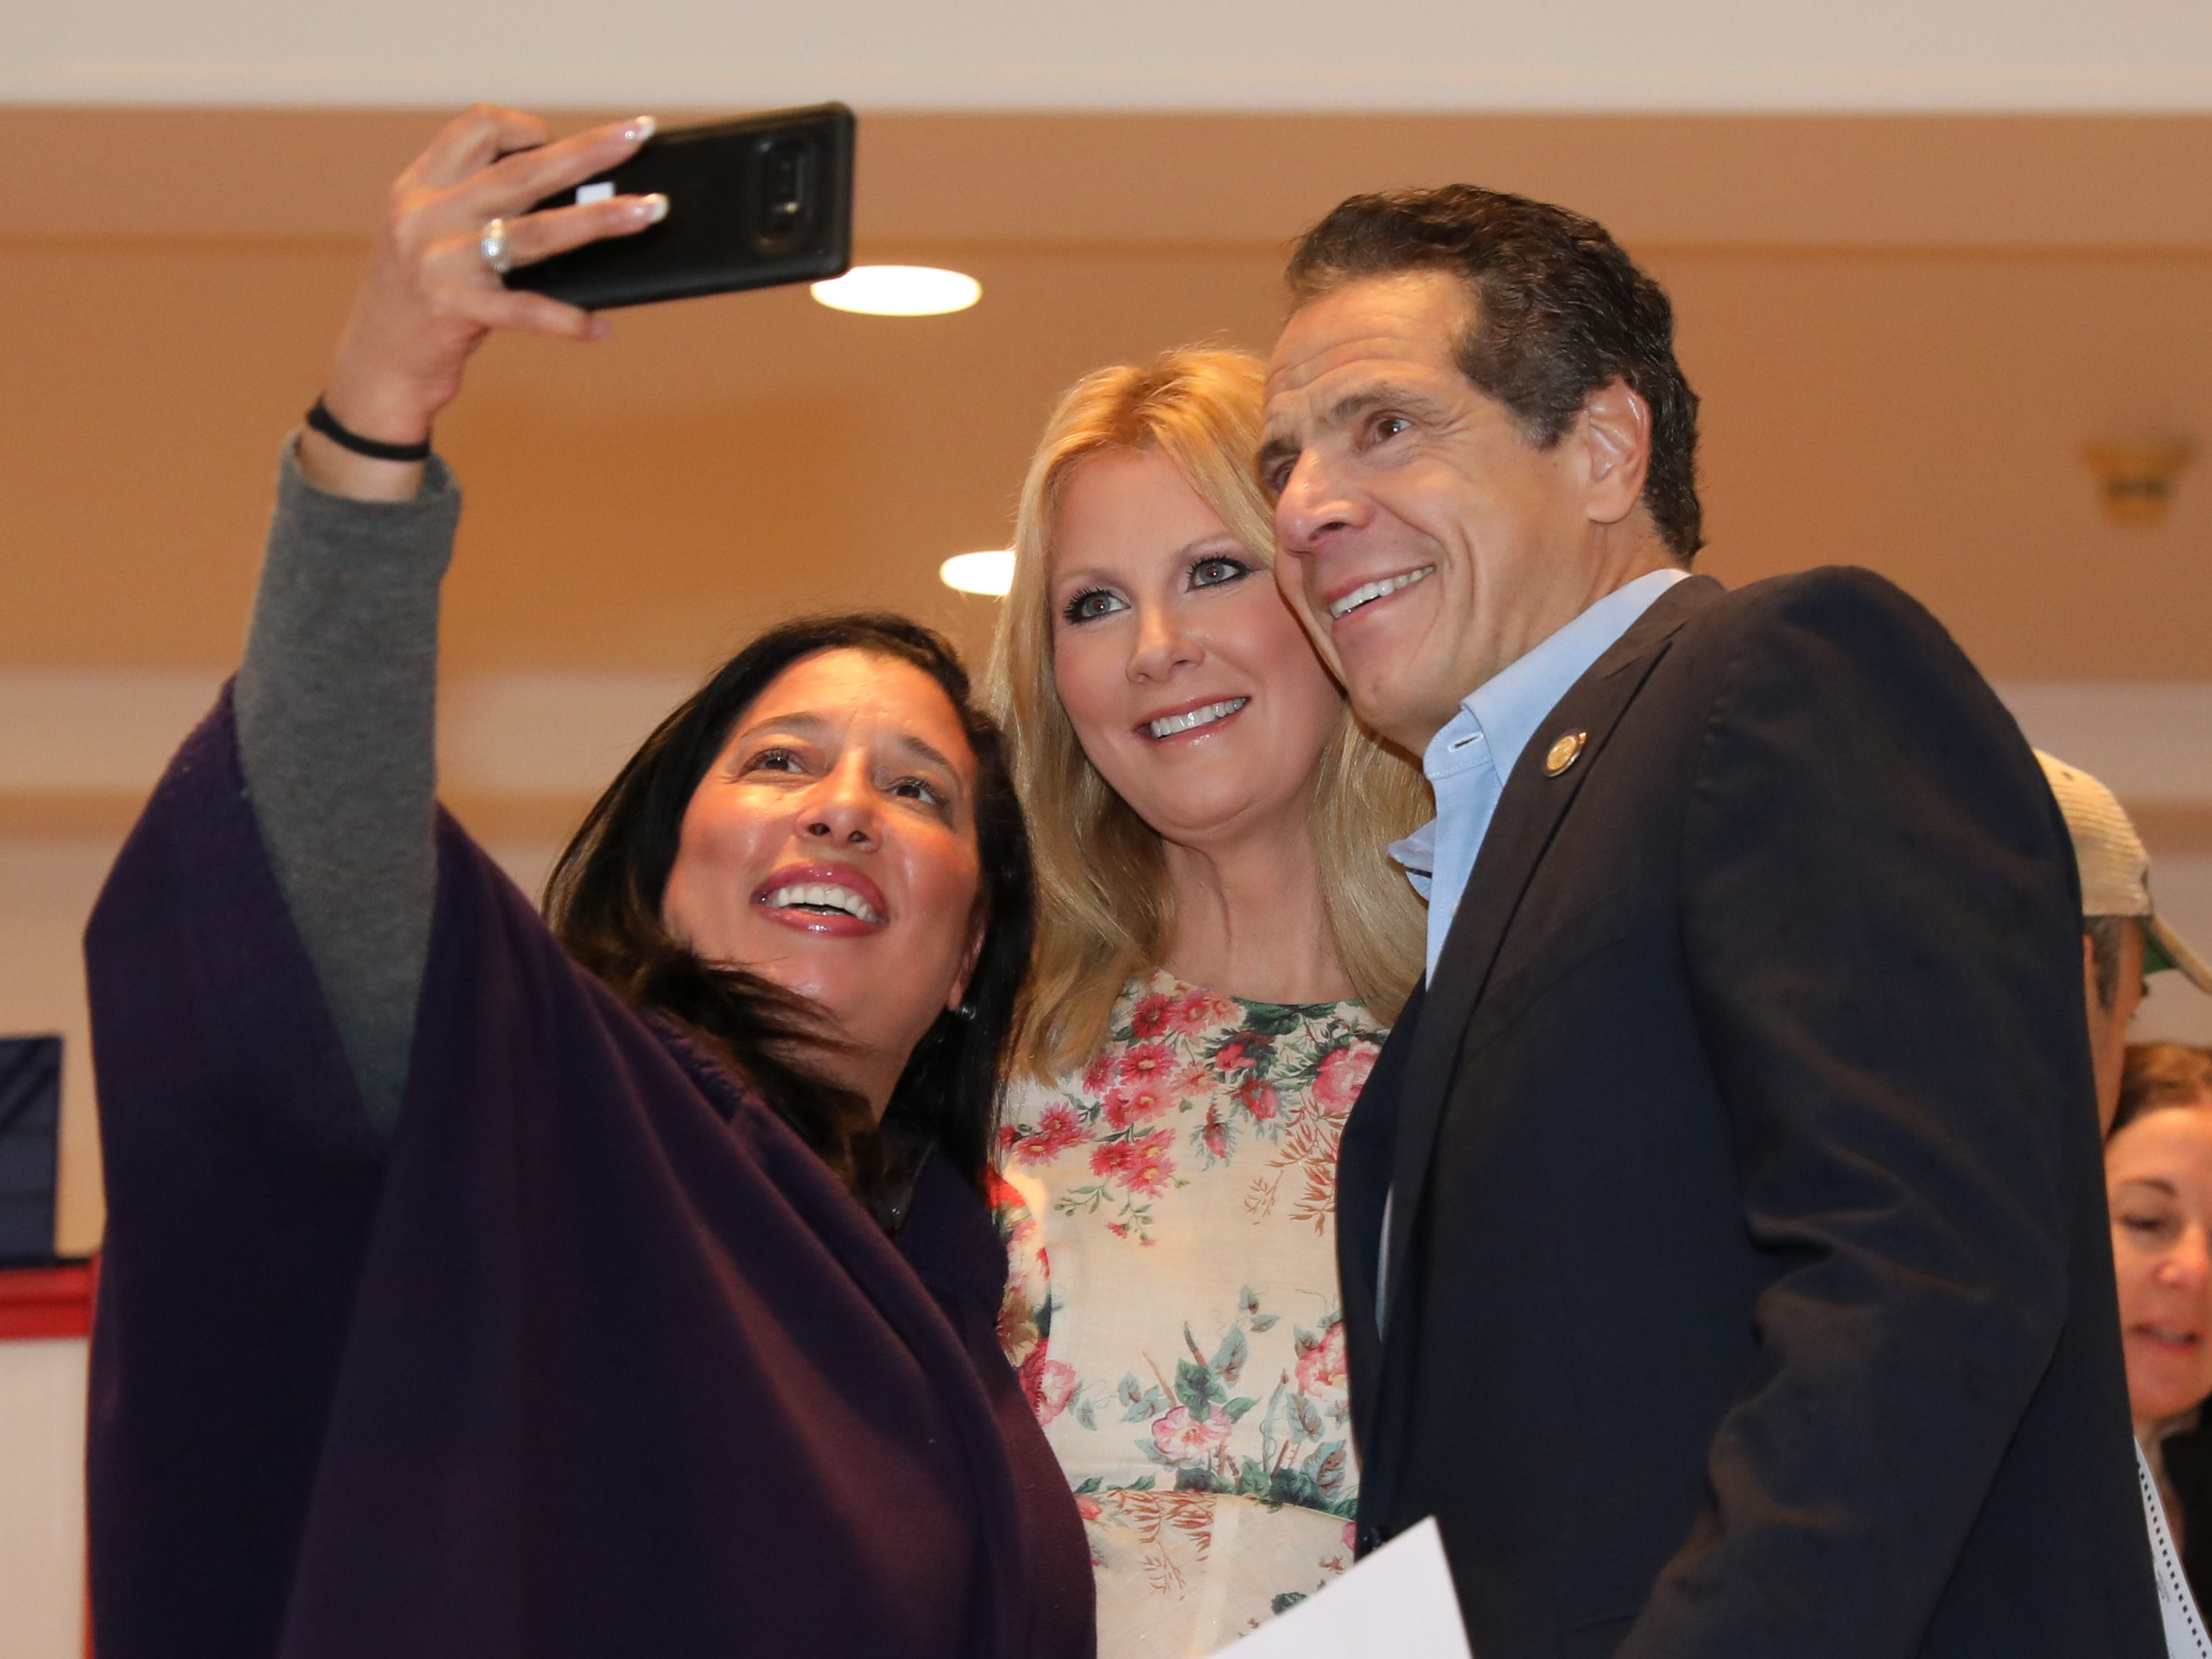 New York Governor Andrew Cuomo and girlfriend Sandra Lee take a selfie with a voter as they prepare to vote at the Presbyterian Church of Mount Kisco on Nov. 6, 2018.